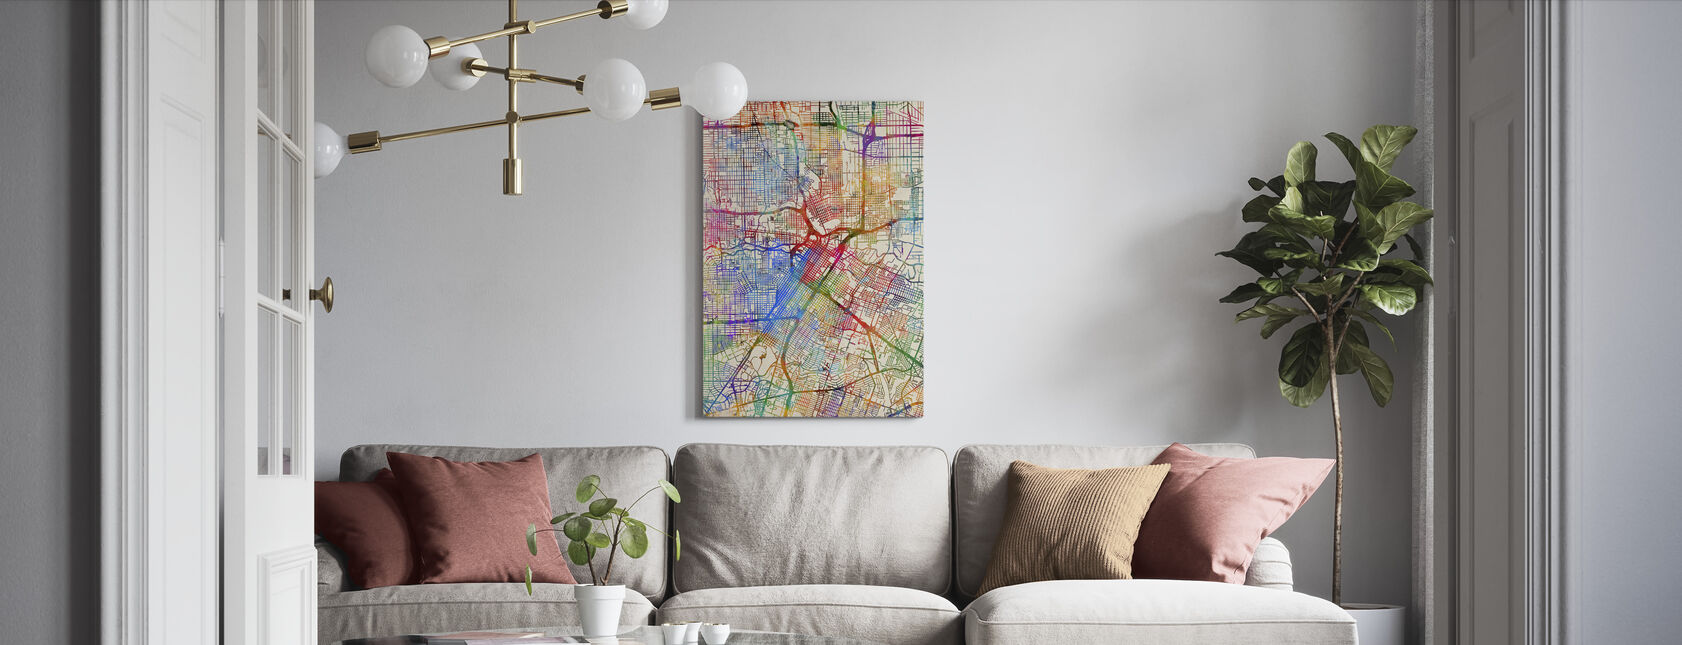 Houston Texas City Street Map - Canvas print - Living Room